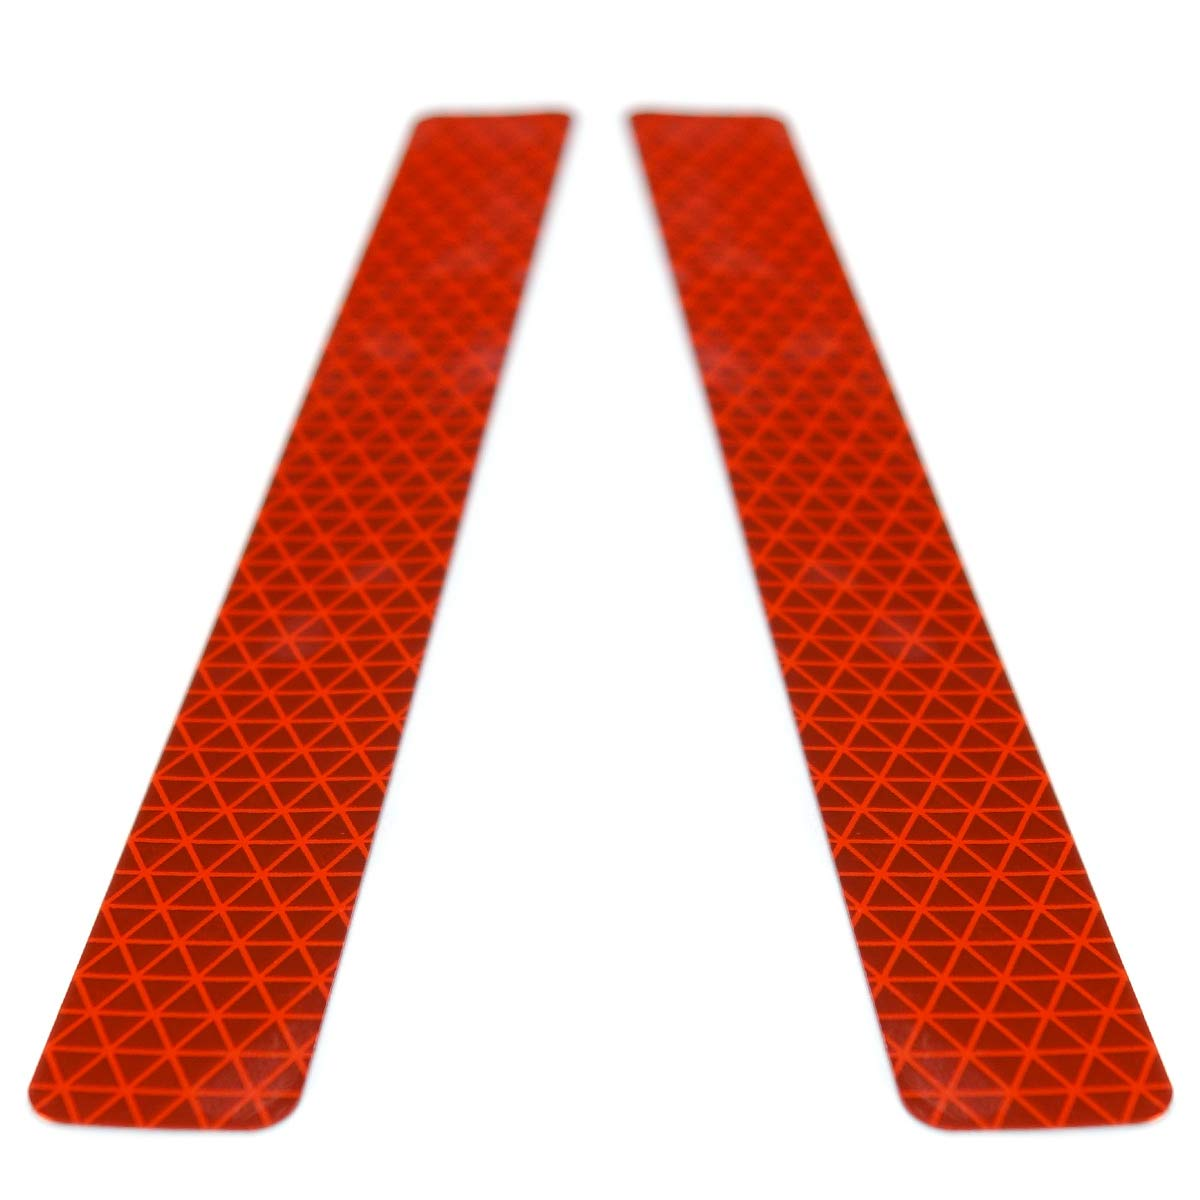 Bumper Reflector Self-Adhesive Ultra Reflective Safety Sticker Decal with Corrosion Resistant Aluminum Reduce Rear End Collisions with Zero Power Consumption Block